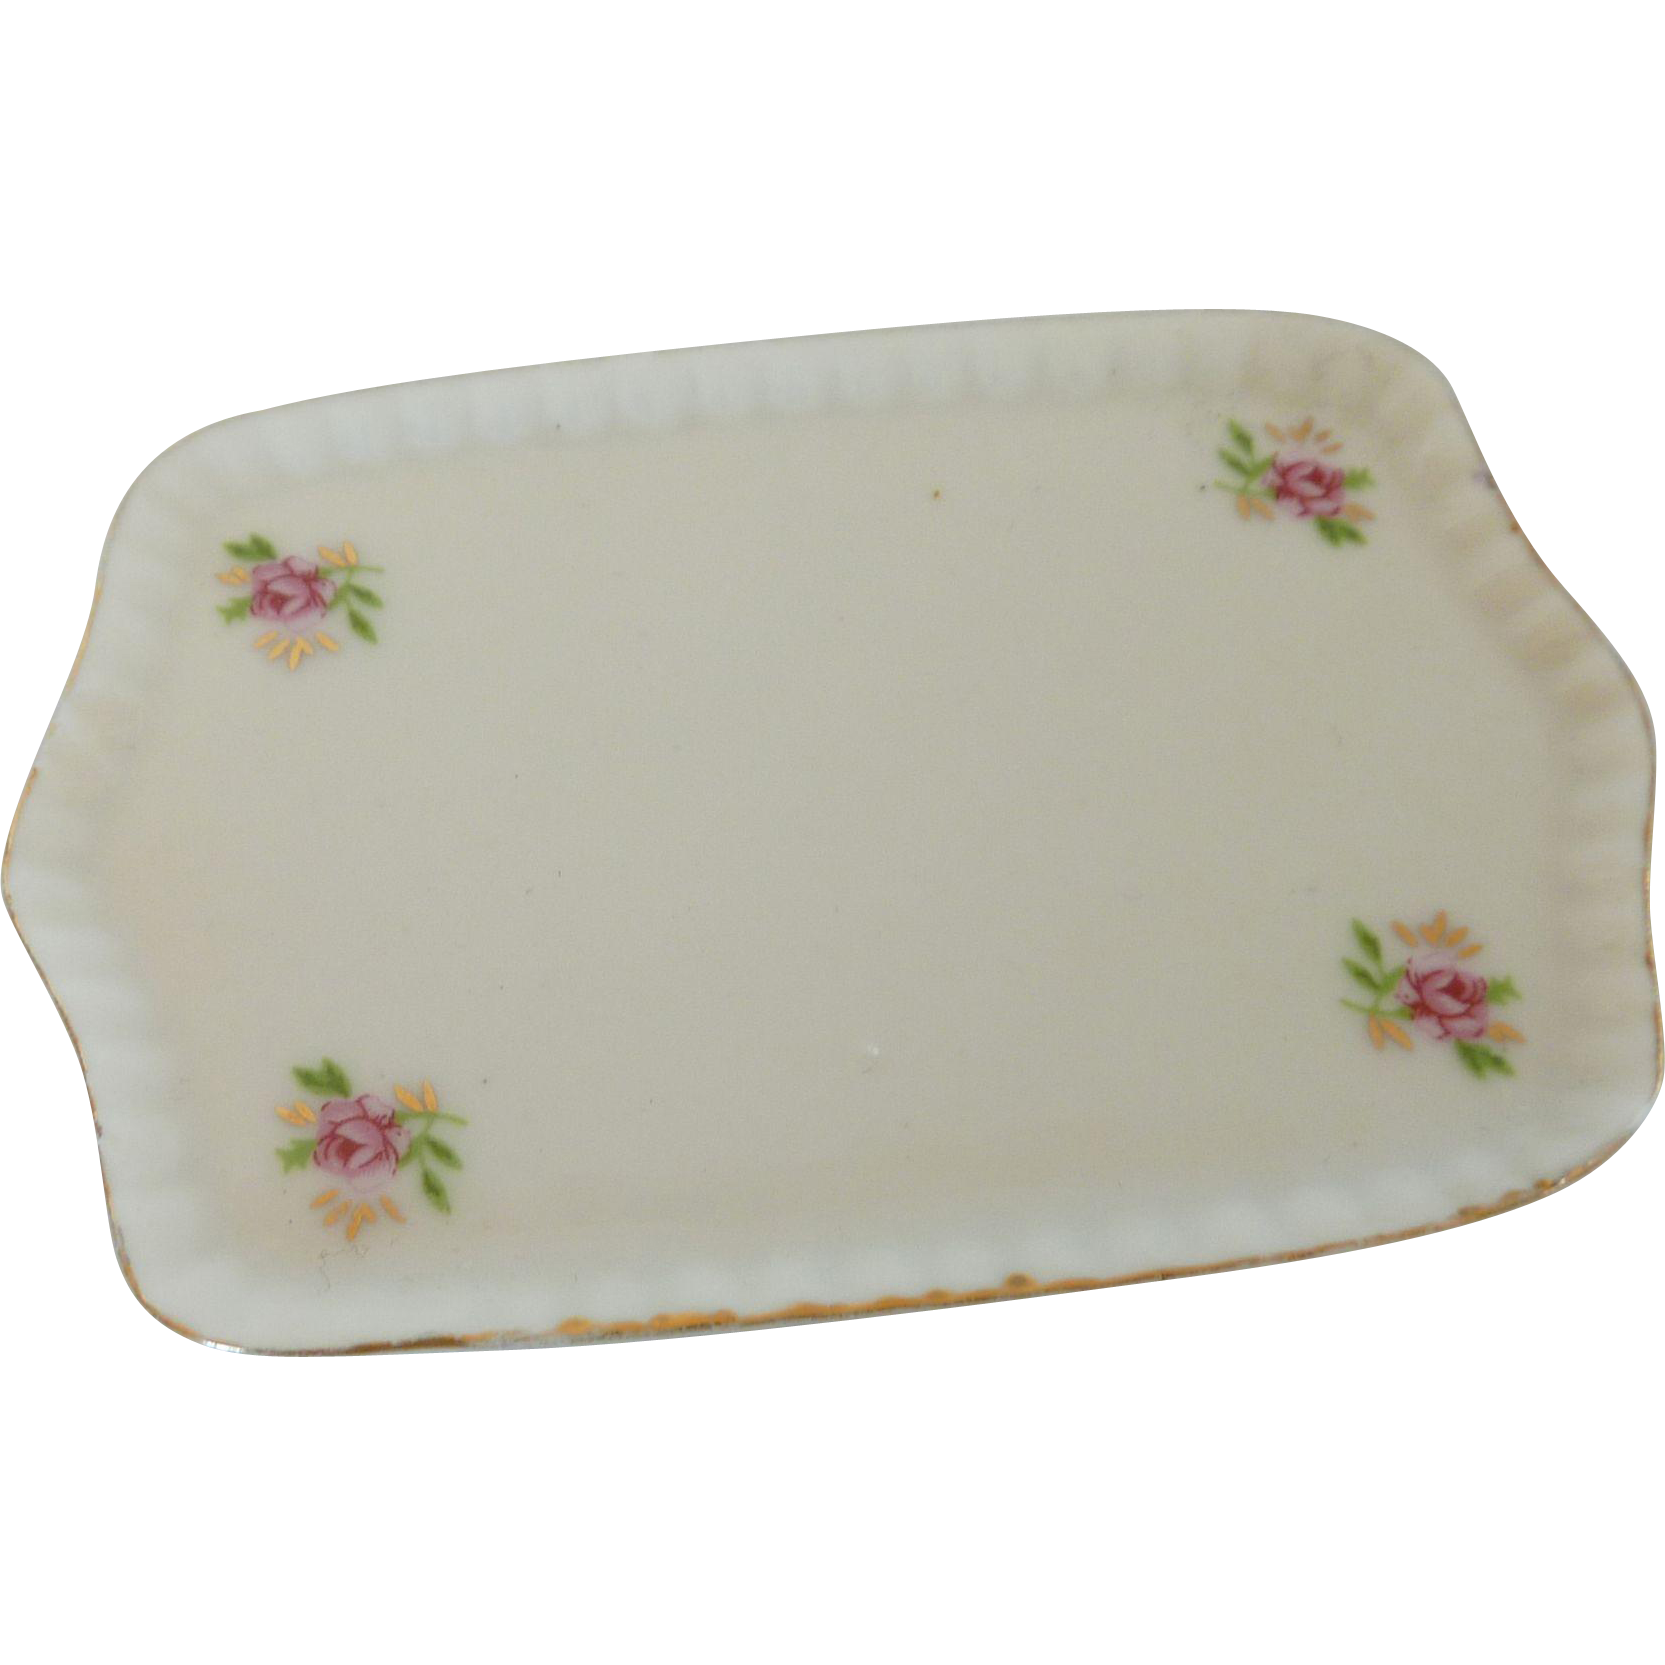 Small Porcelain Tray with Roses